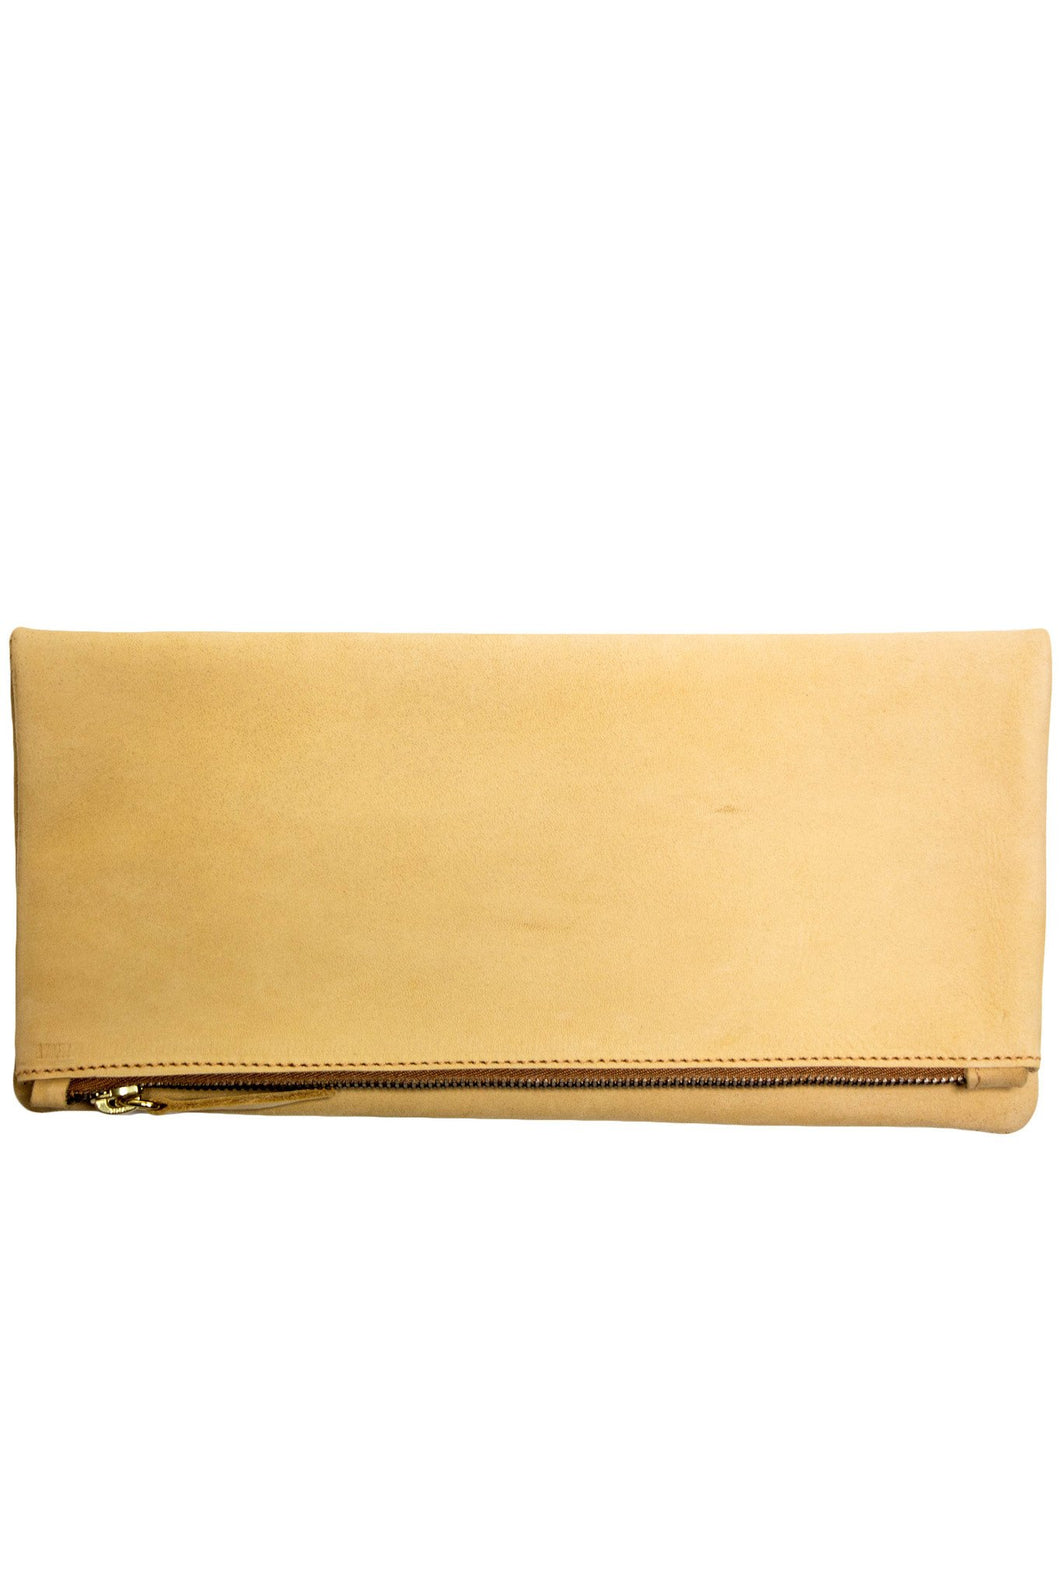 Nubuck Leather Foldover Clutch